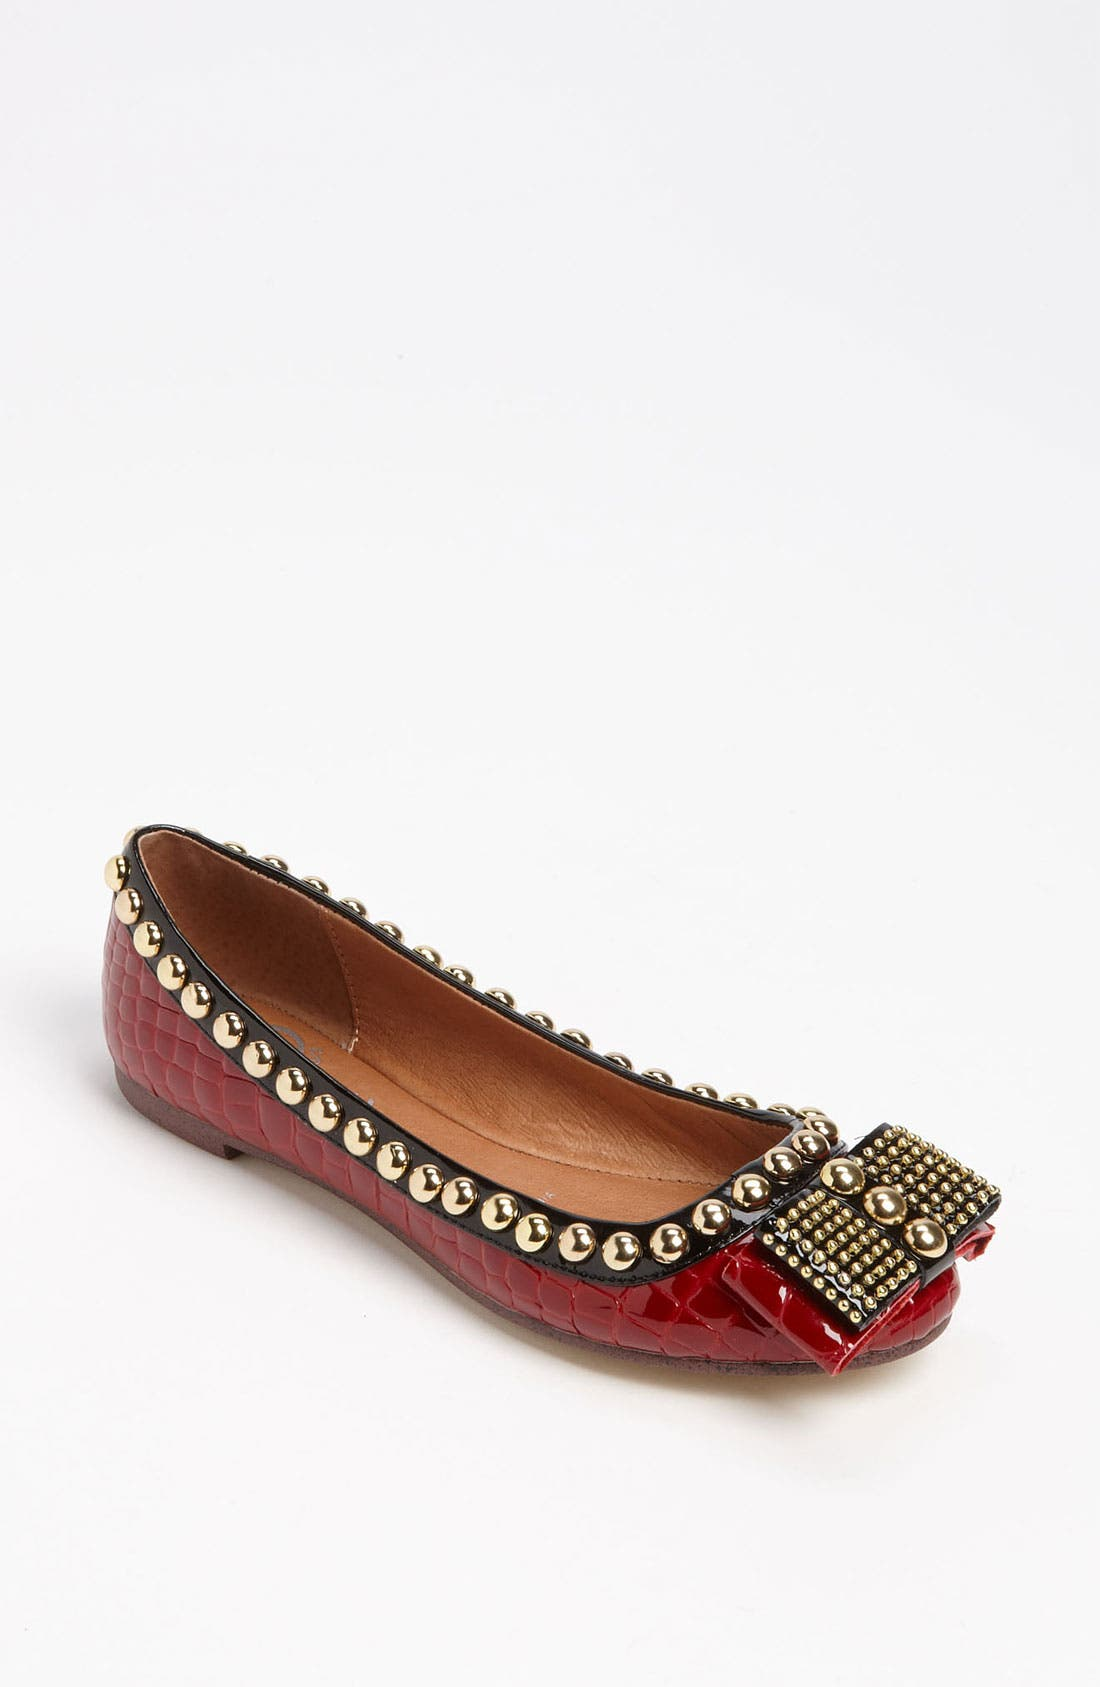 Alternate Image 1 Selected - Jeffrey Campbell 'Dauphine' Flat